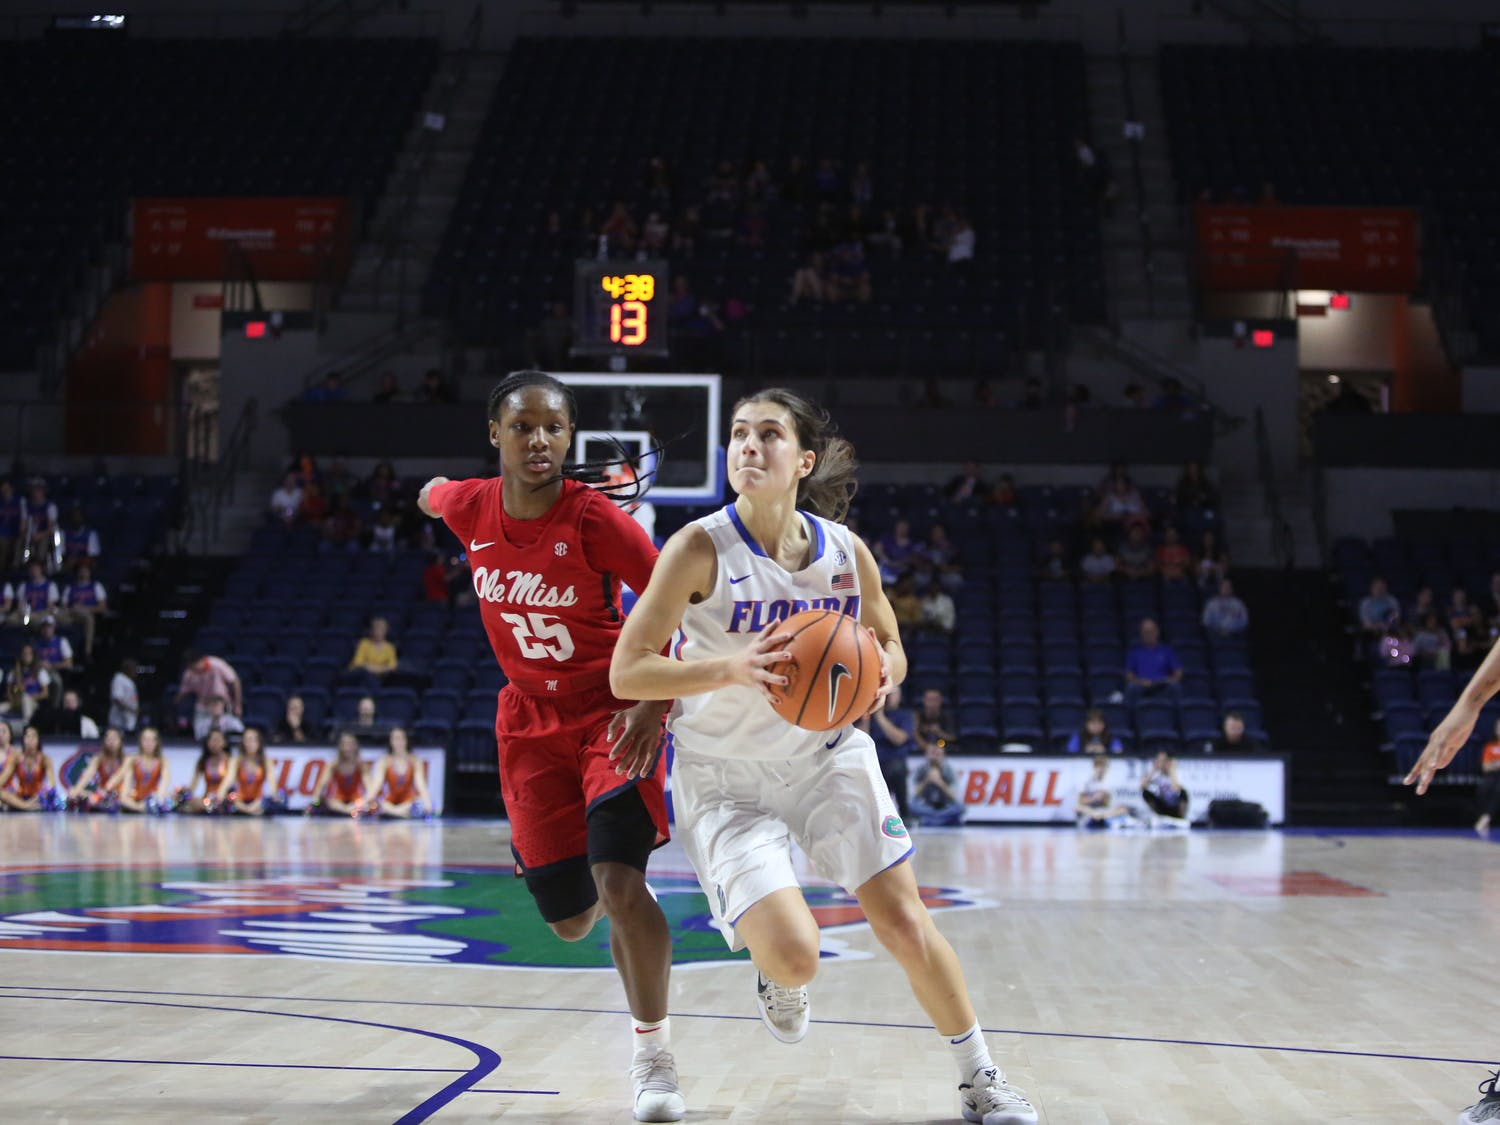 Florida guards Funda Nakkasoglu (pictured) and Delicia Washington combined for 56 points in UF's 92-82 loss against Mercer.